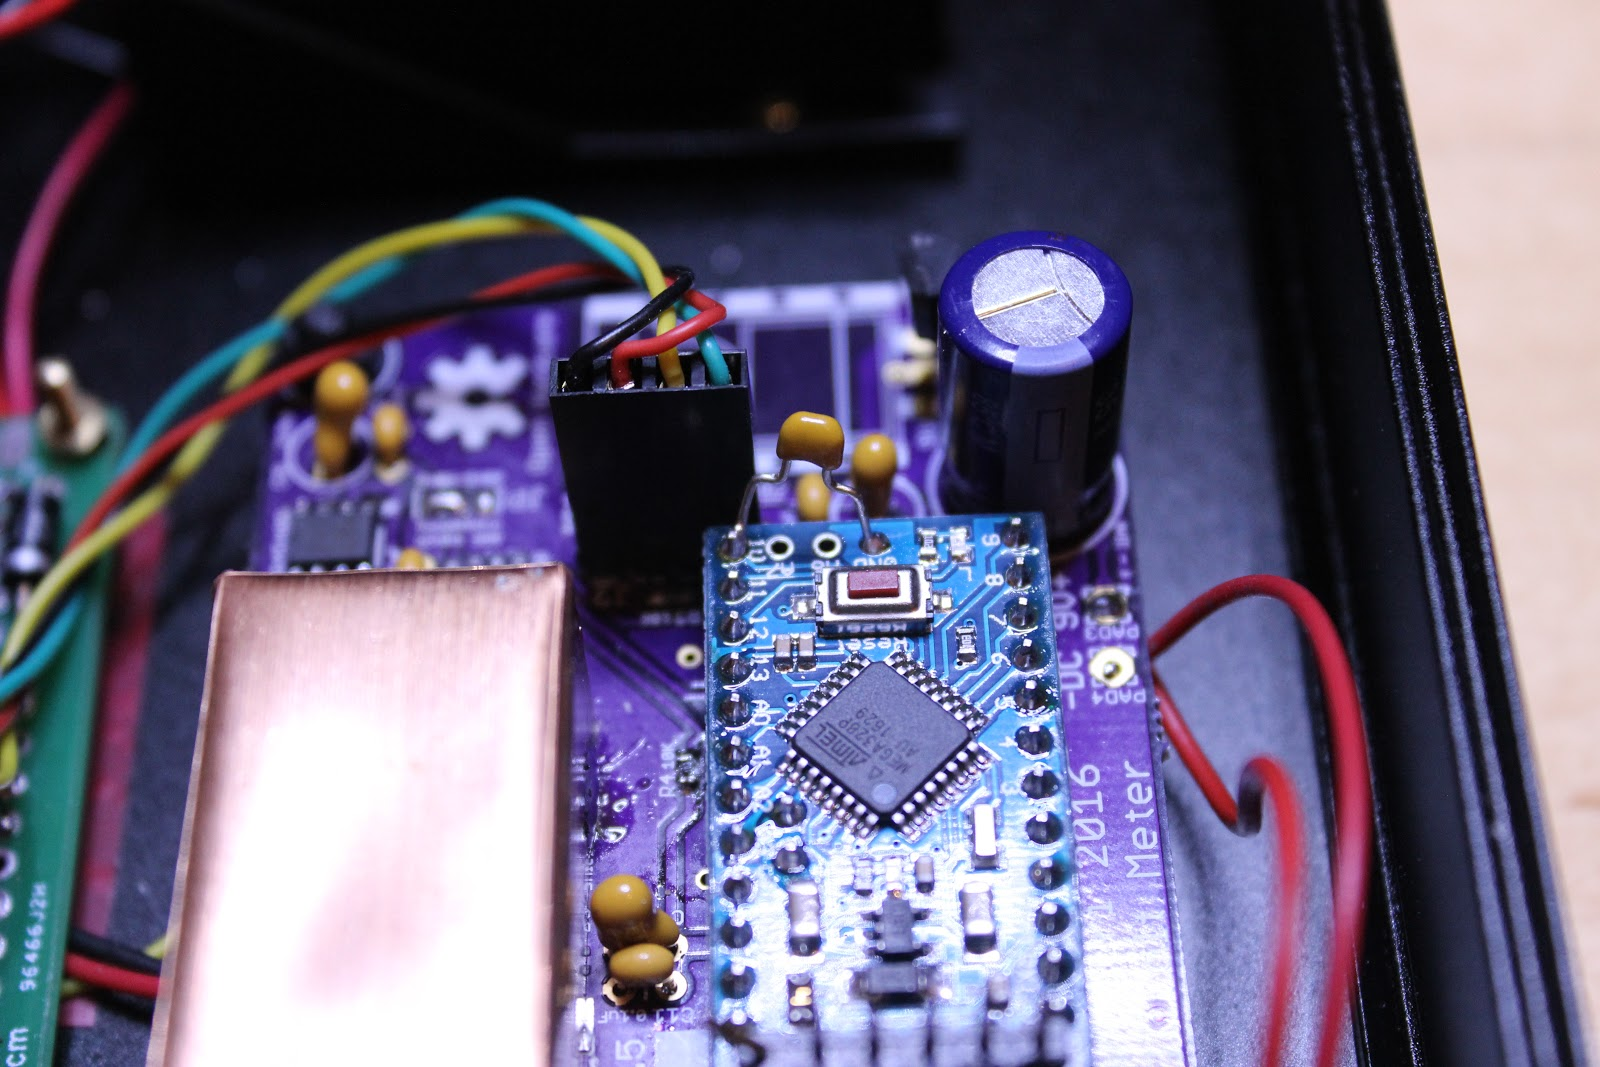 Pauls Diy Electronics Blog Building A 6 Digit Milli Volt Meter Precision Audio Millivoltmeter Circuit And This Is The Result